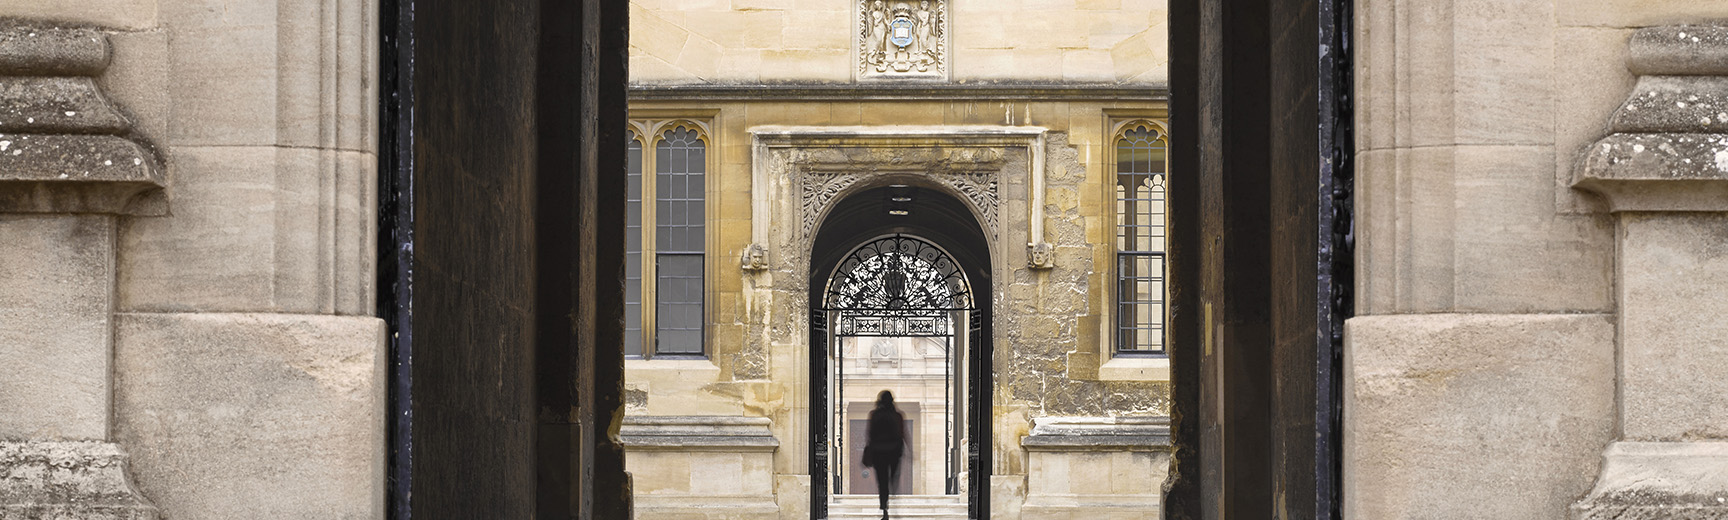 The silhouette of a person walking through an archway into the Old Bodleian Library